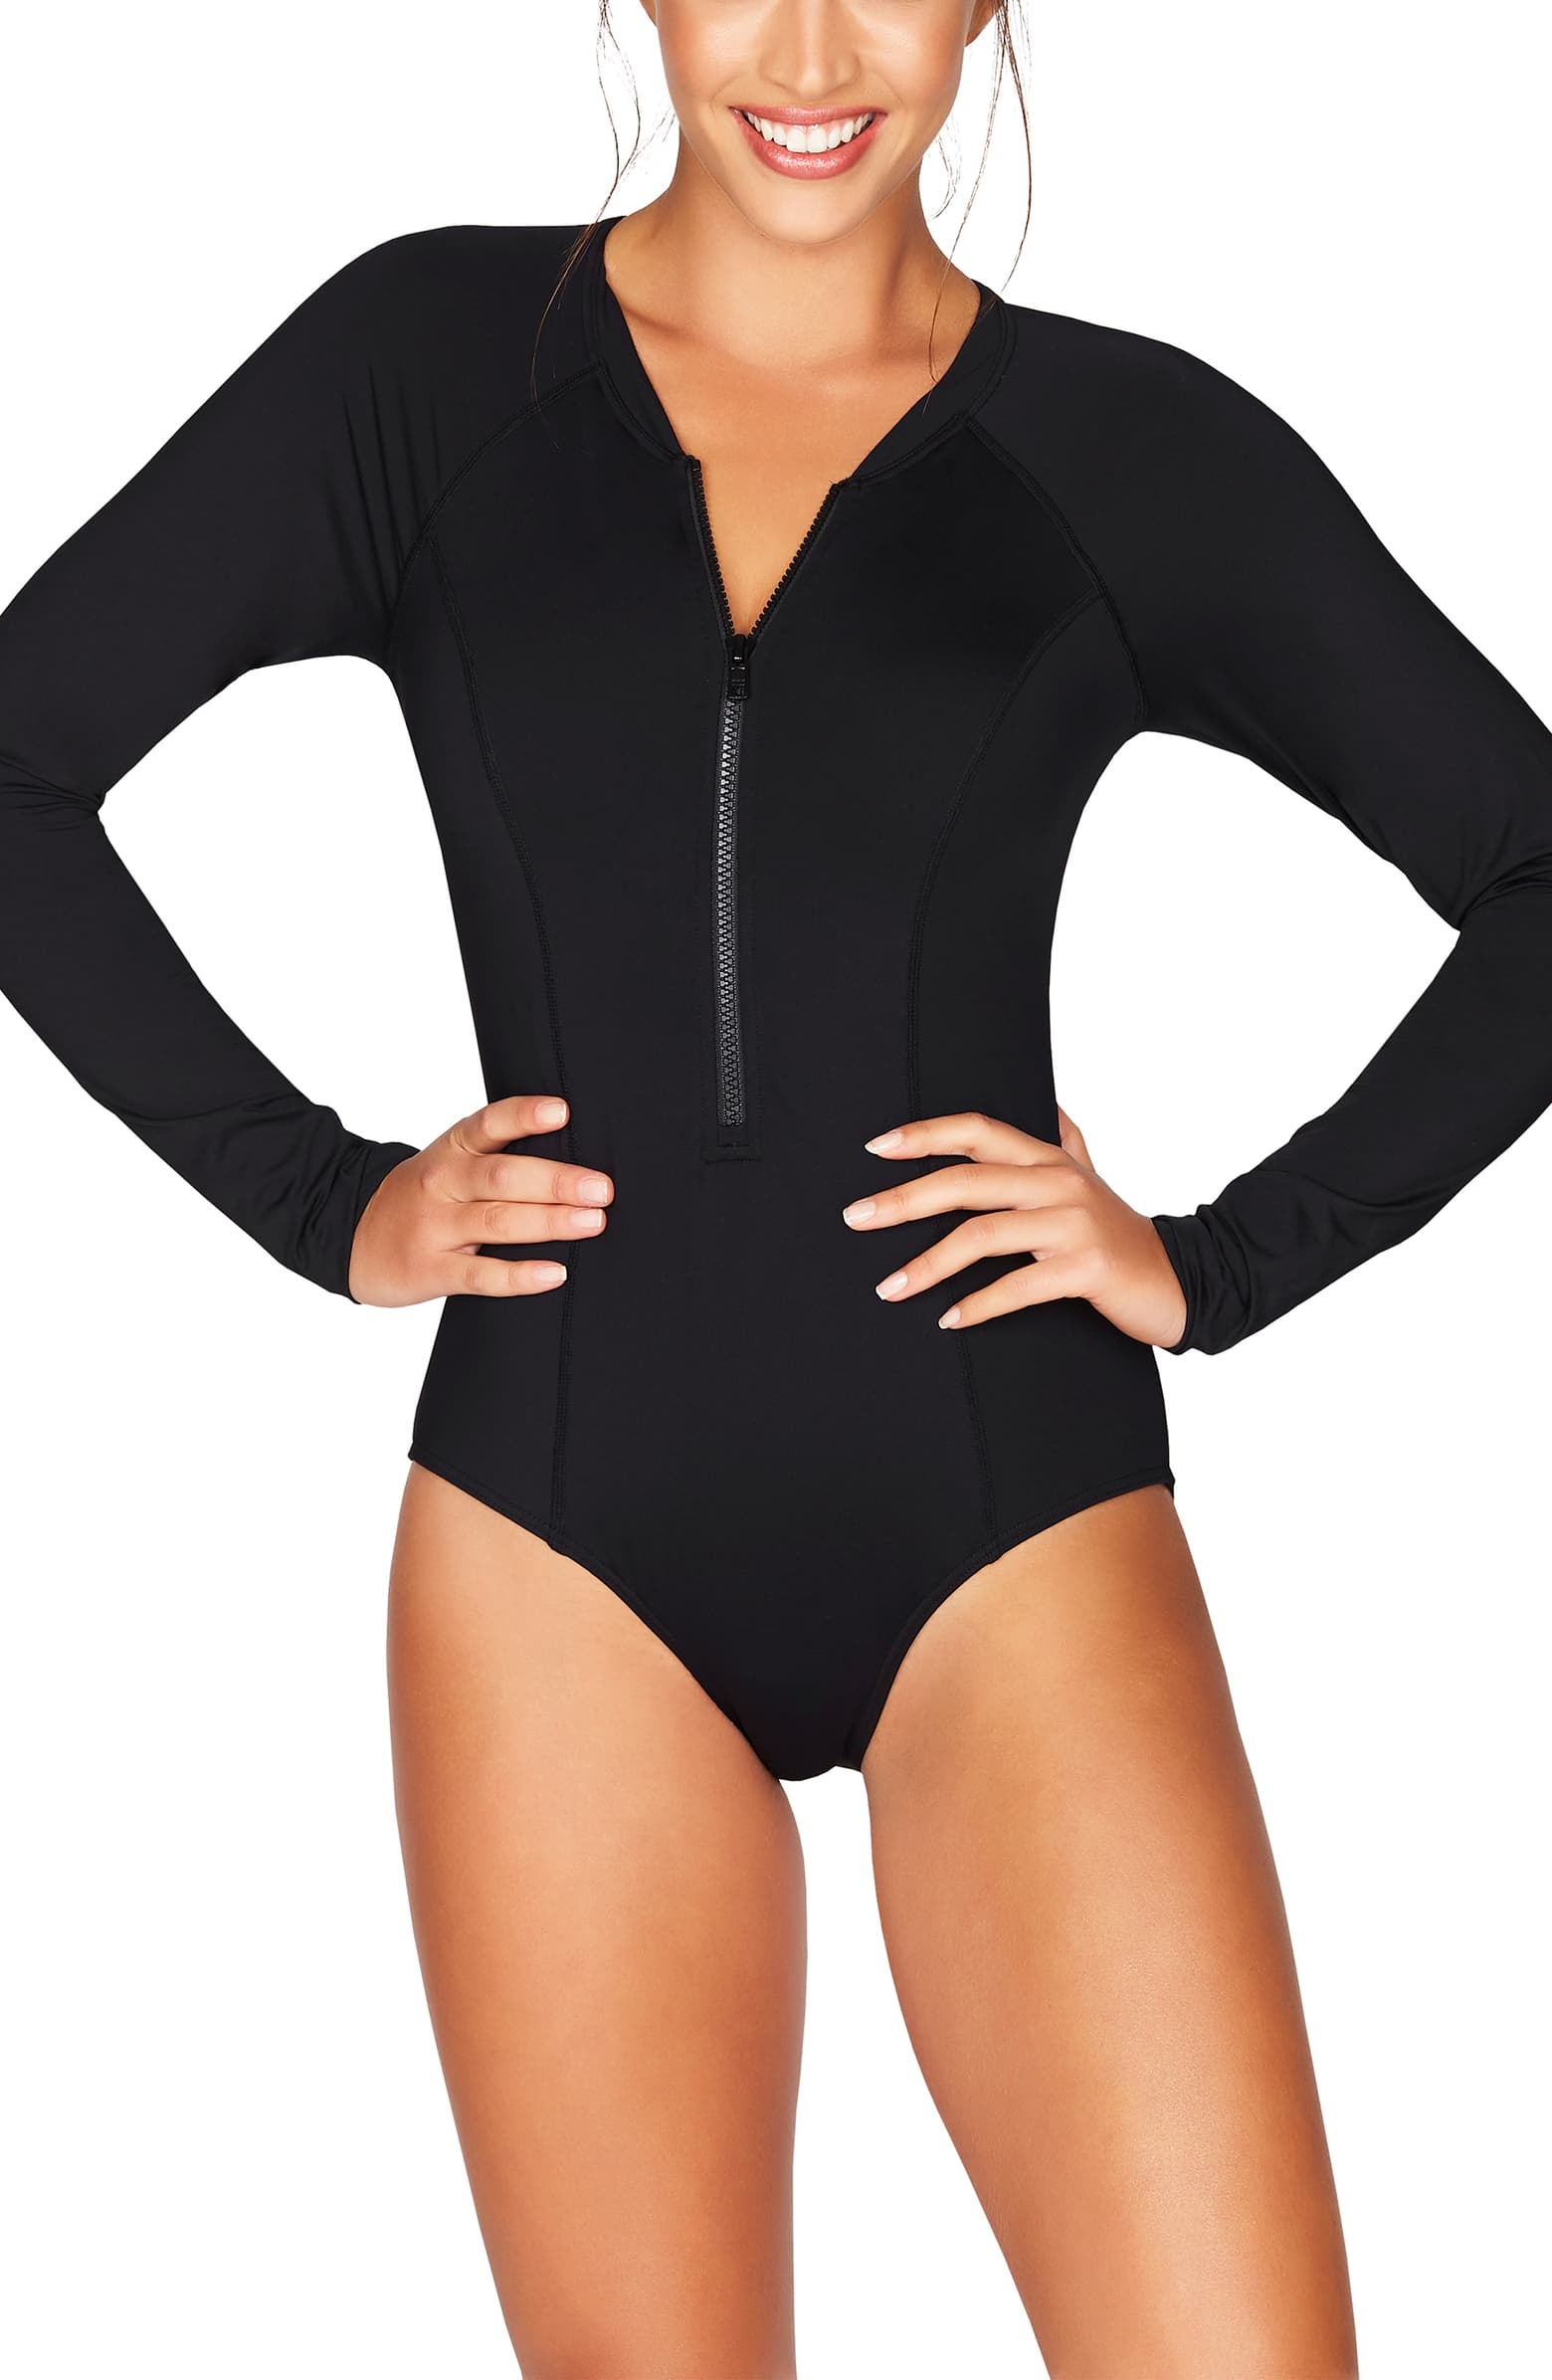 Black one-piece swimsuit with long sleeves that covers acne and shoulders